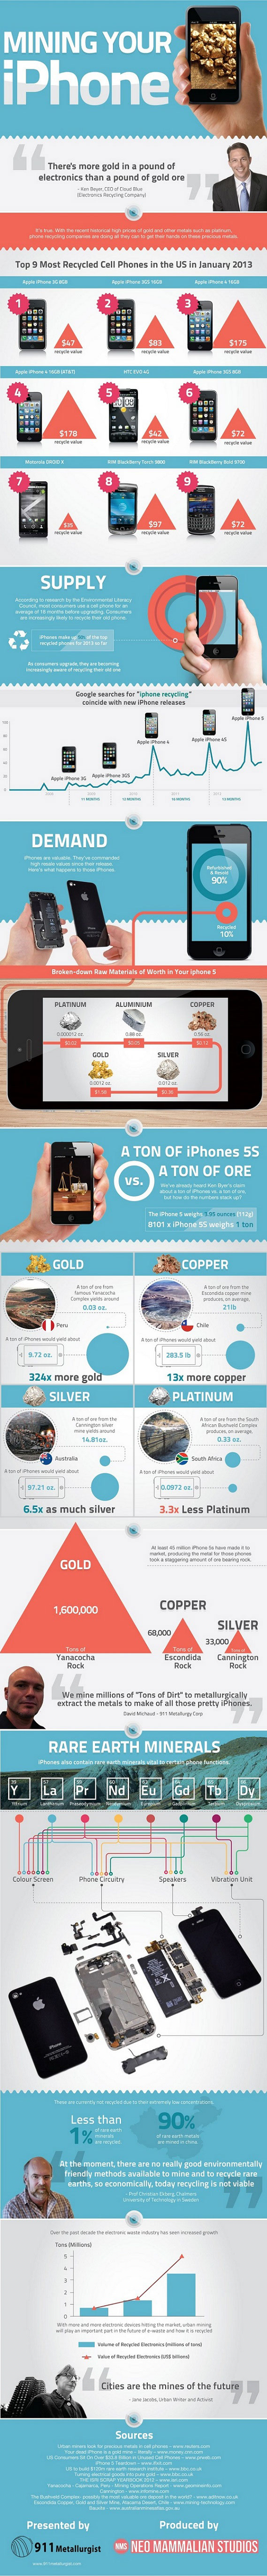 iPhone Hidden Treasure-Infographic